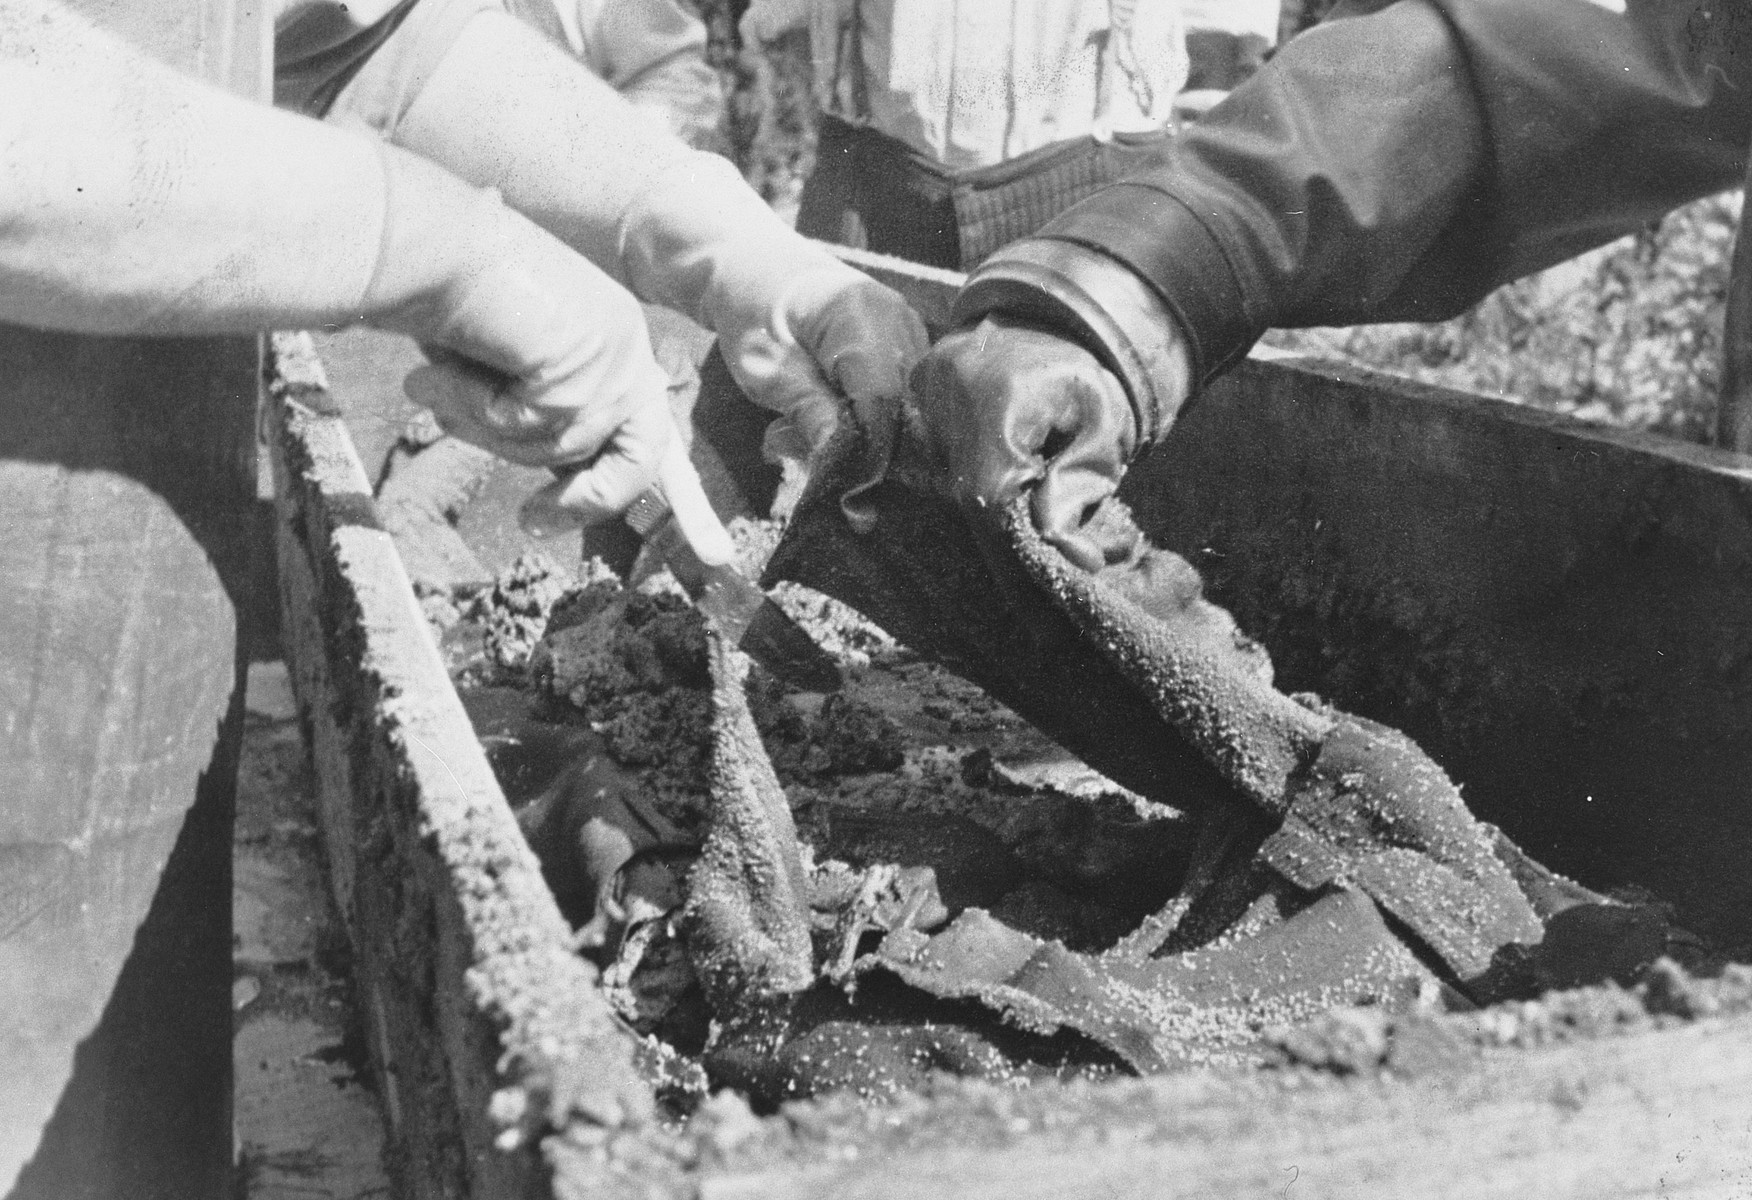 Members of the an Army War Crime Investigation team examine the remains of American flyers somewhere in Germany.